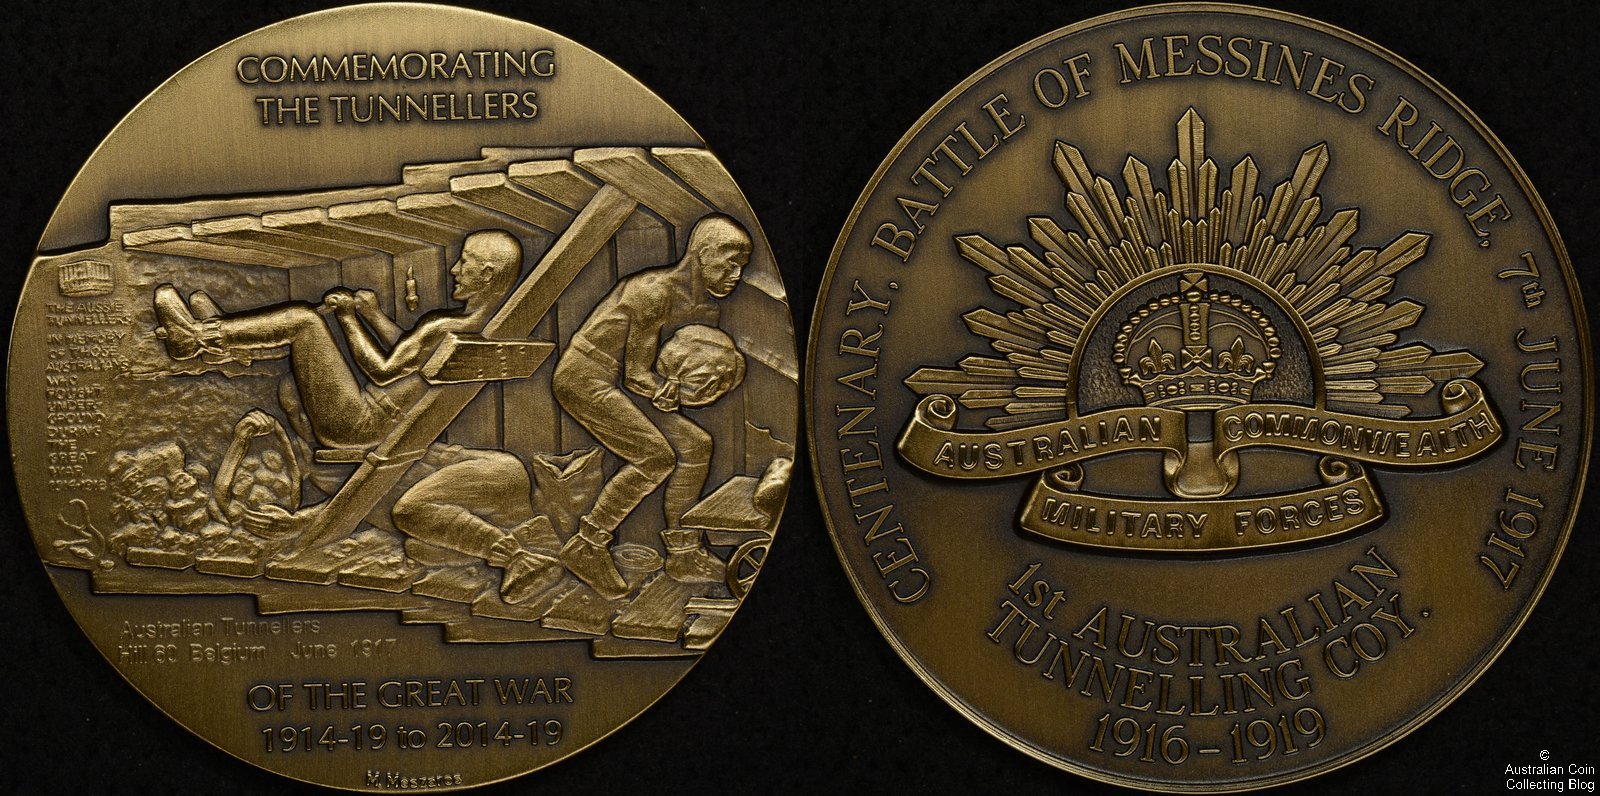 2017 Centenary of the Battle of Messines Ridge Medal